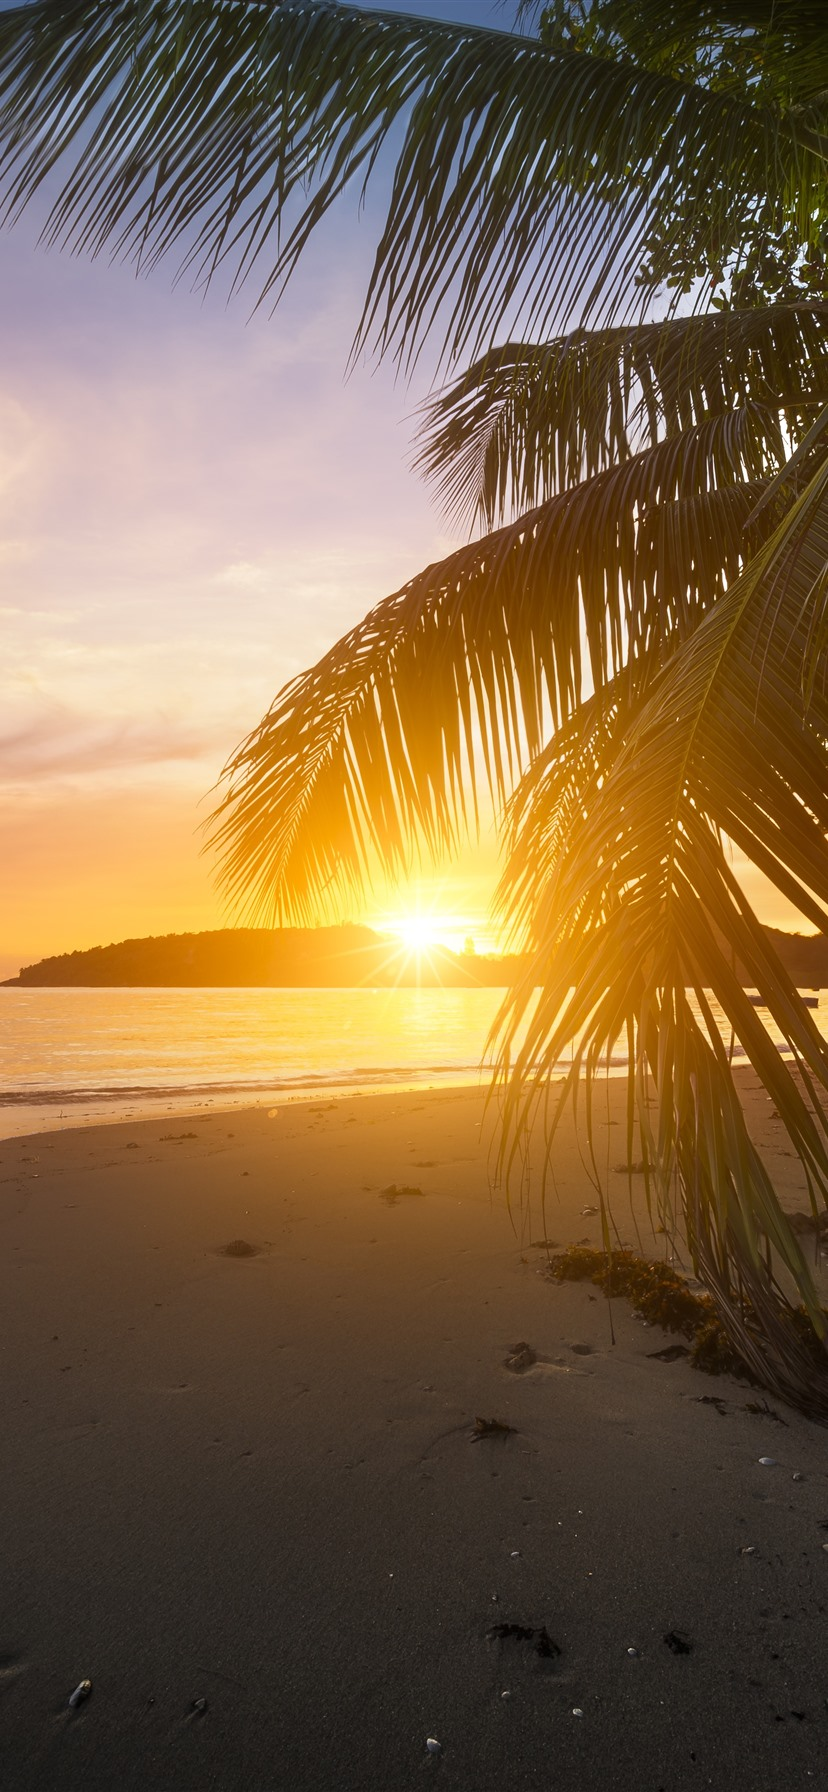 Beach Palm Tree Leaves Sunset Glare 1242x2688 Iphone 11 Pro Xs Max Wallpaper Background Picture Image